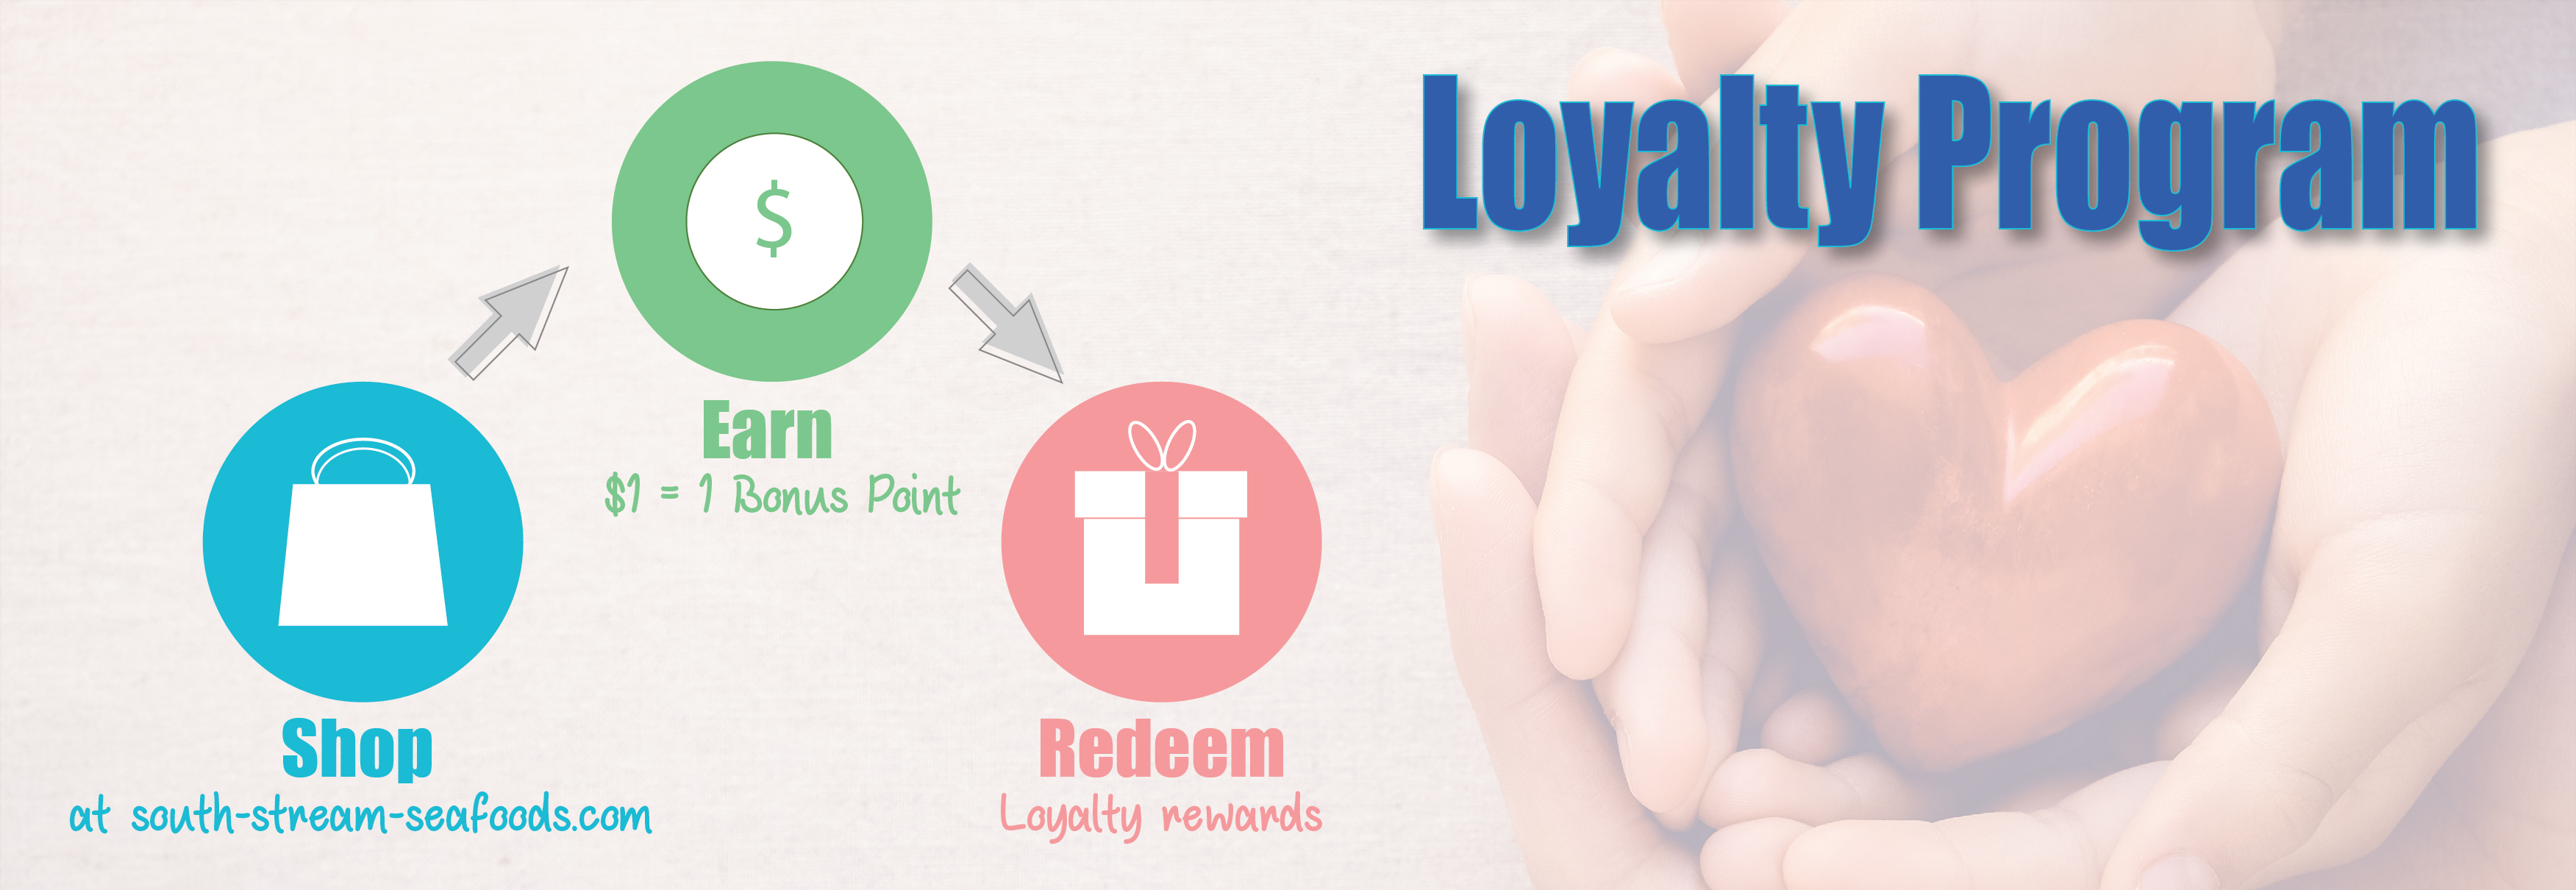 Shop Earn and Redeem